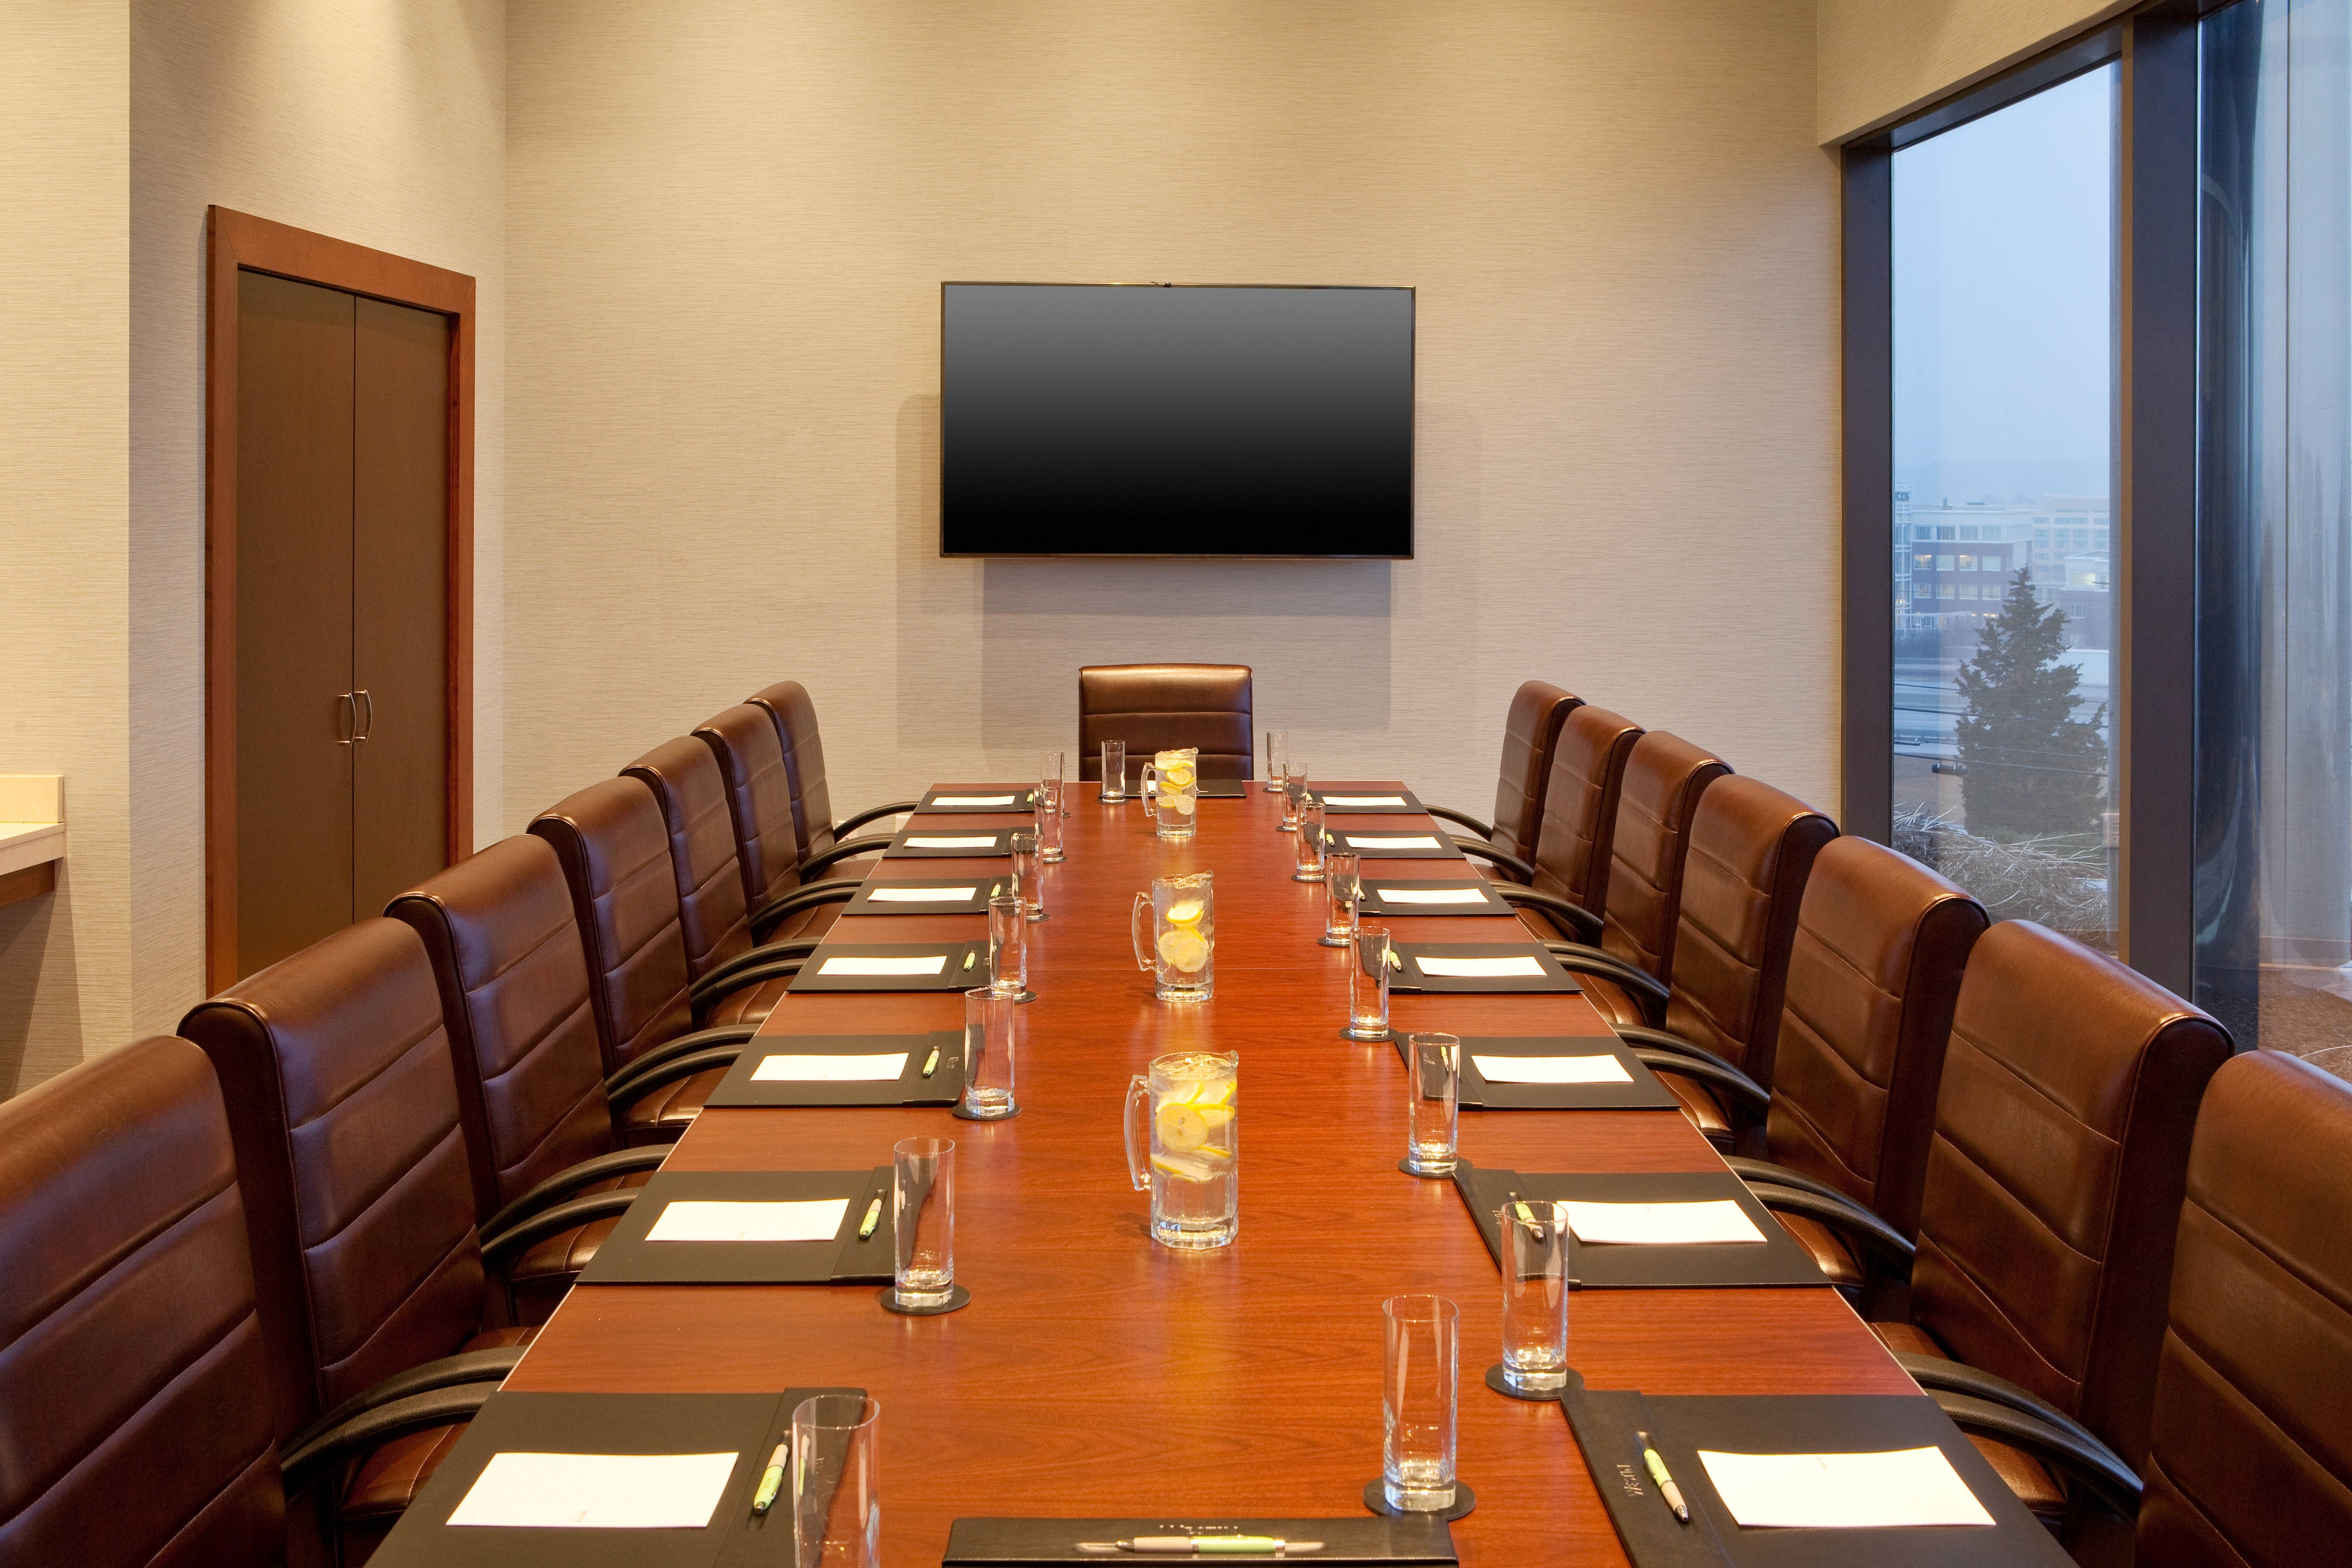 Waltham Boardroom - Meeting